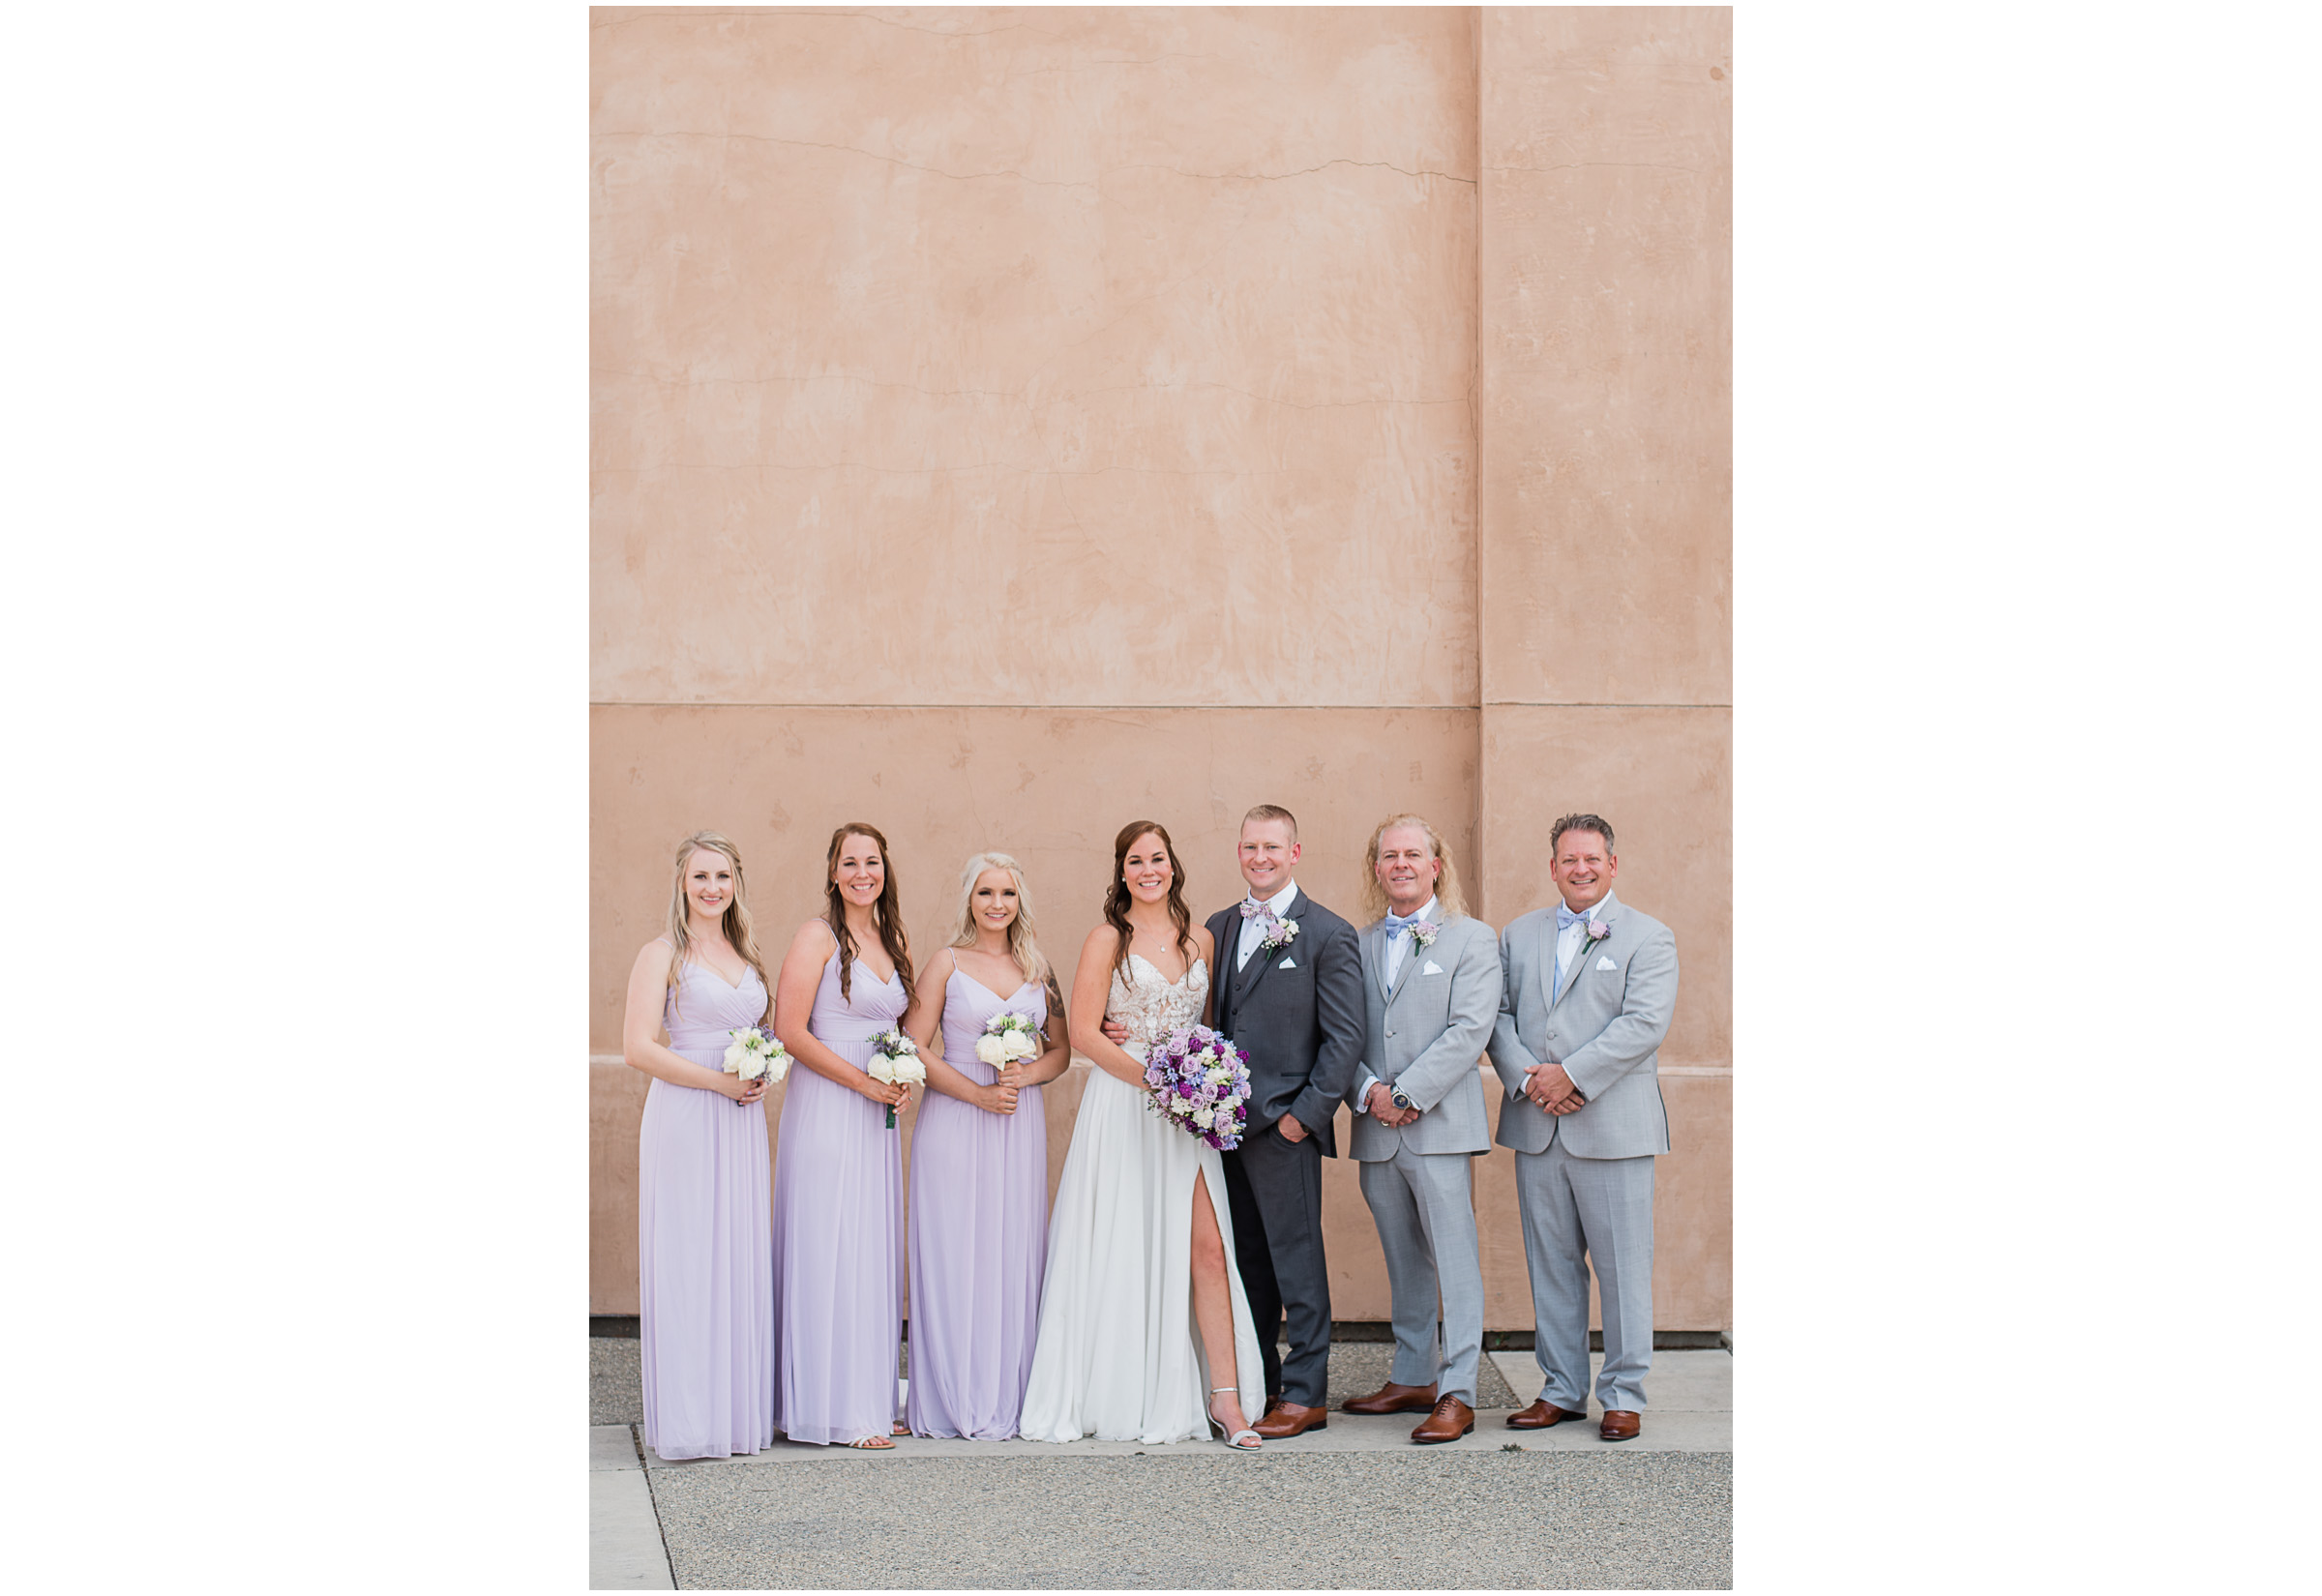 Loomis Wedding - Sacramento Photographer - Blue Goose - Justin Wilcox Photography - 16.jpg